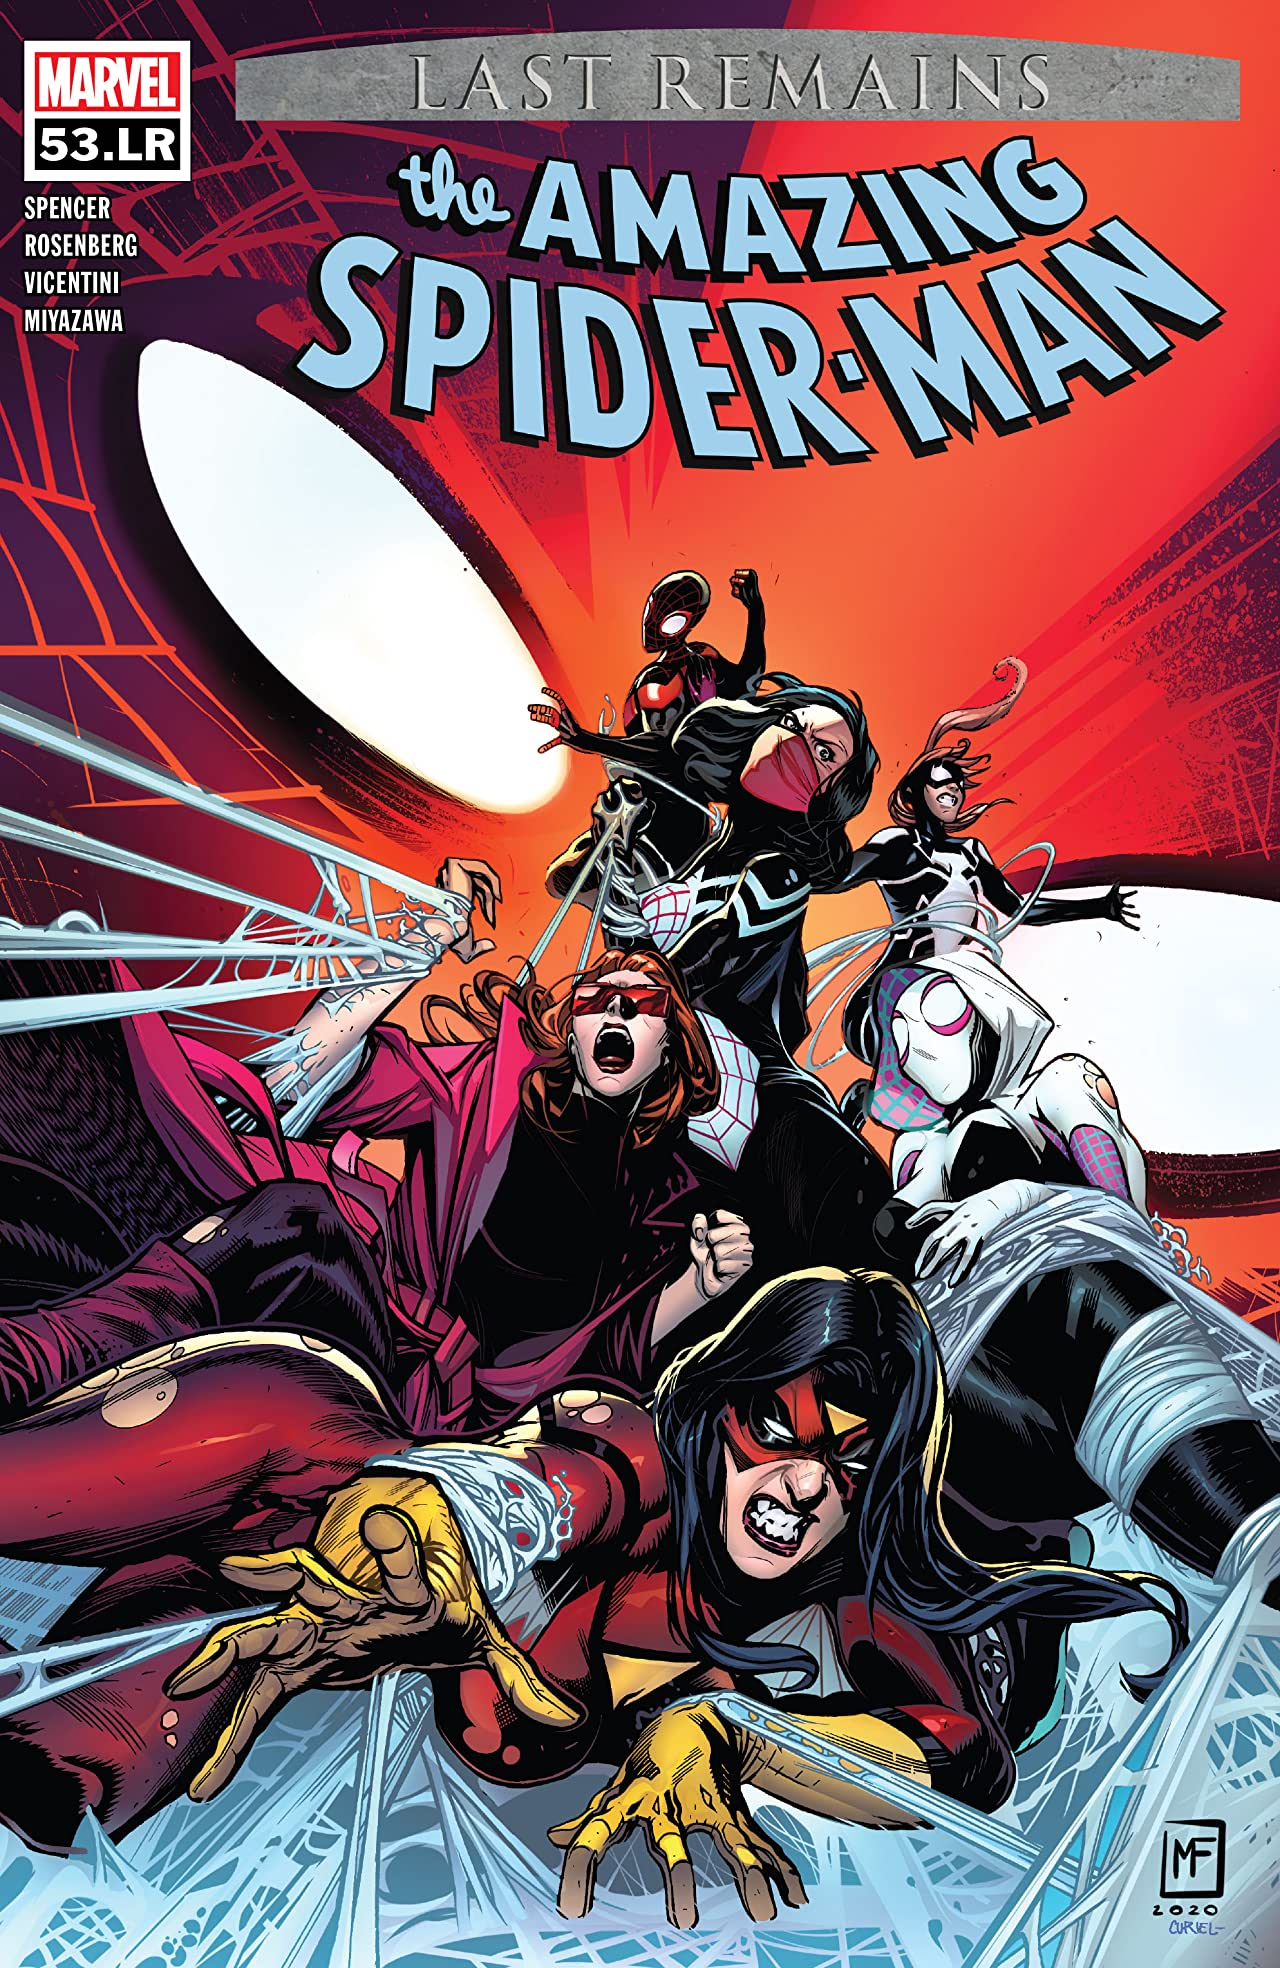 REVIEW: Amazing Spider-Man #53LR